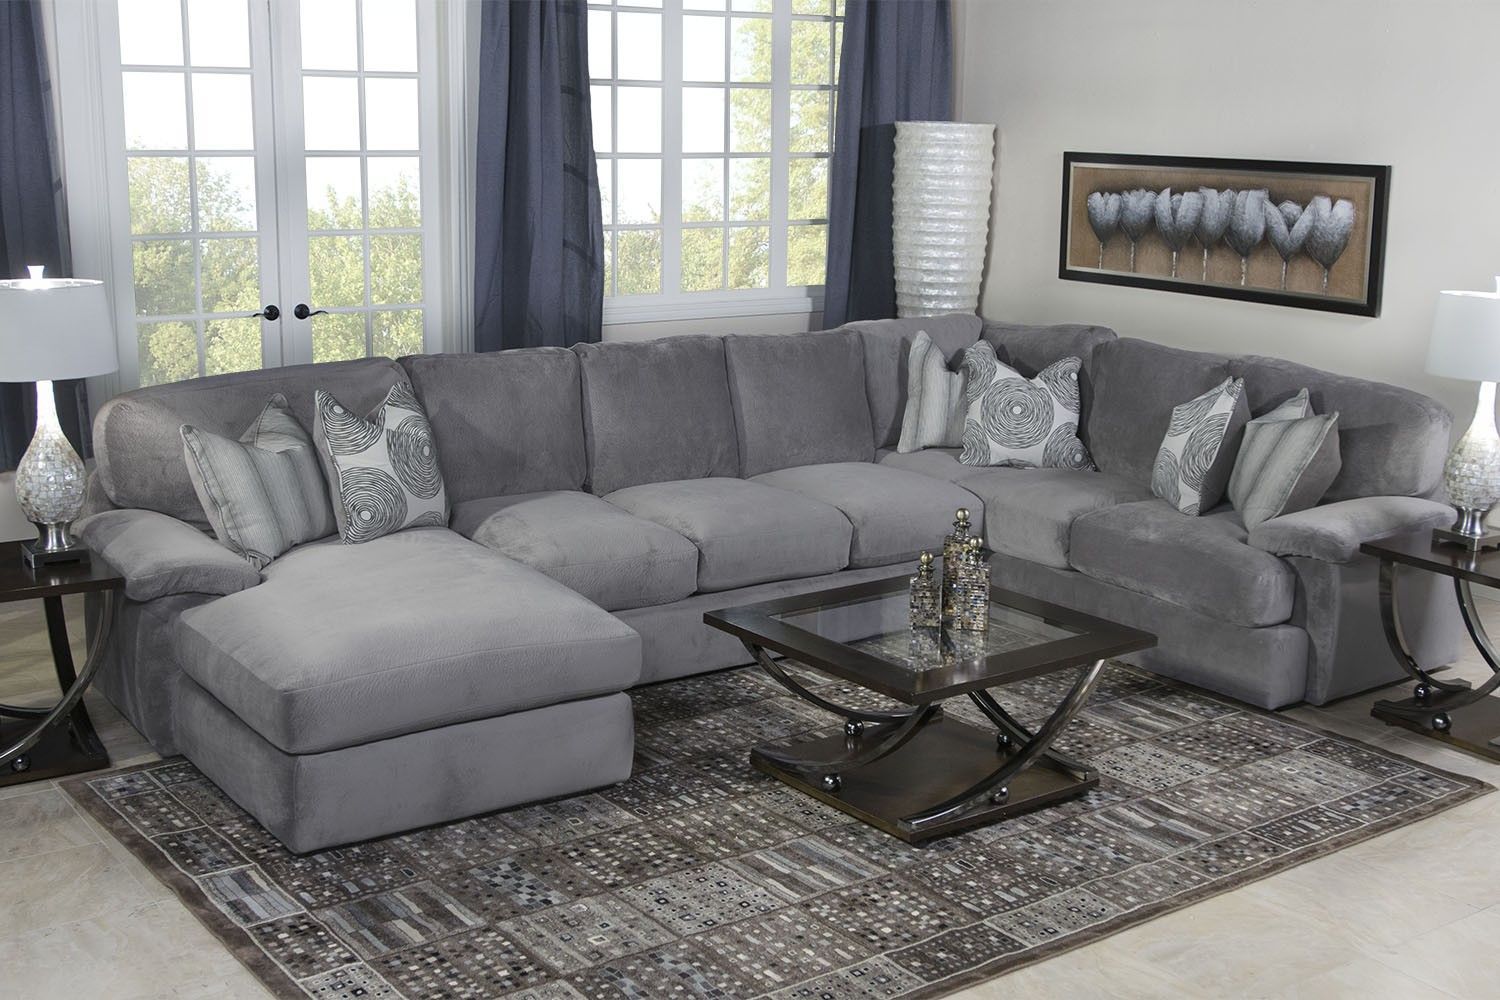 Key west sectional living room in gray living room mor for Gray living room furniture ideas